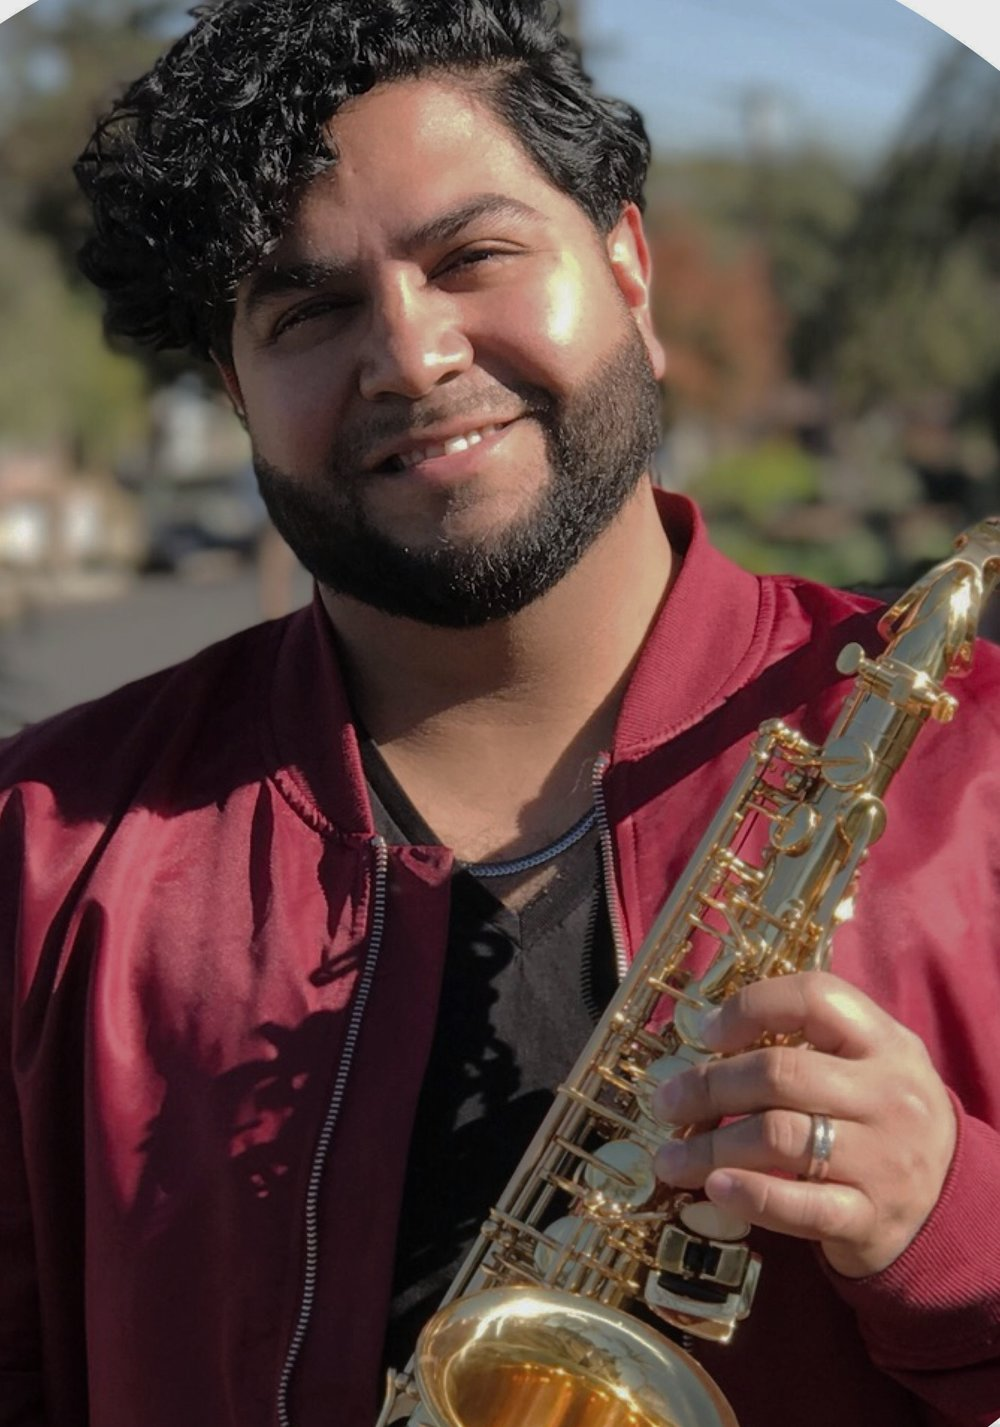 Nick Cedillo - Music with a Mission to change lives!